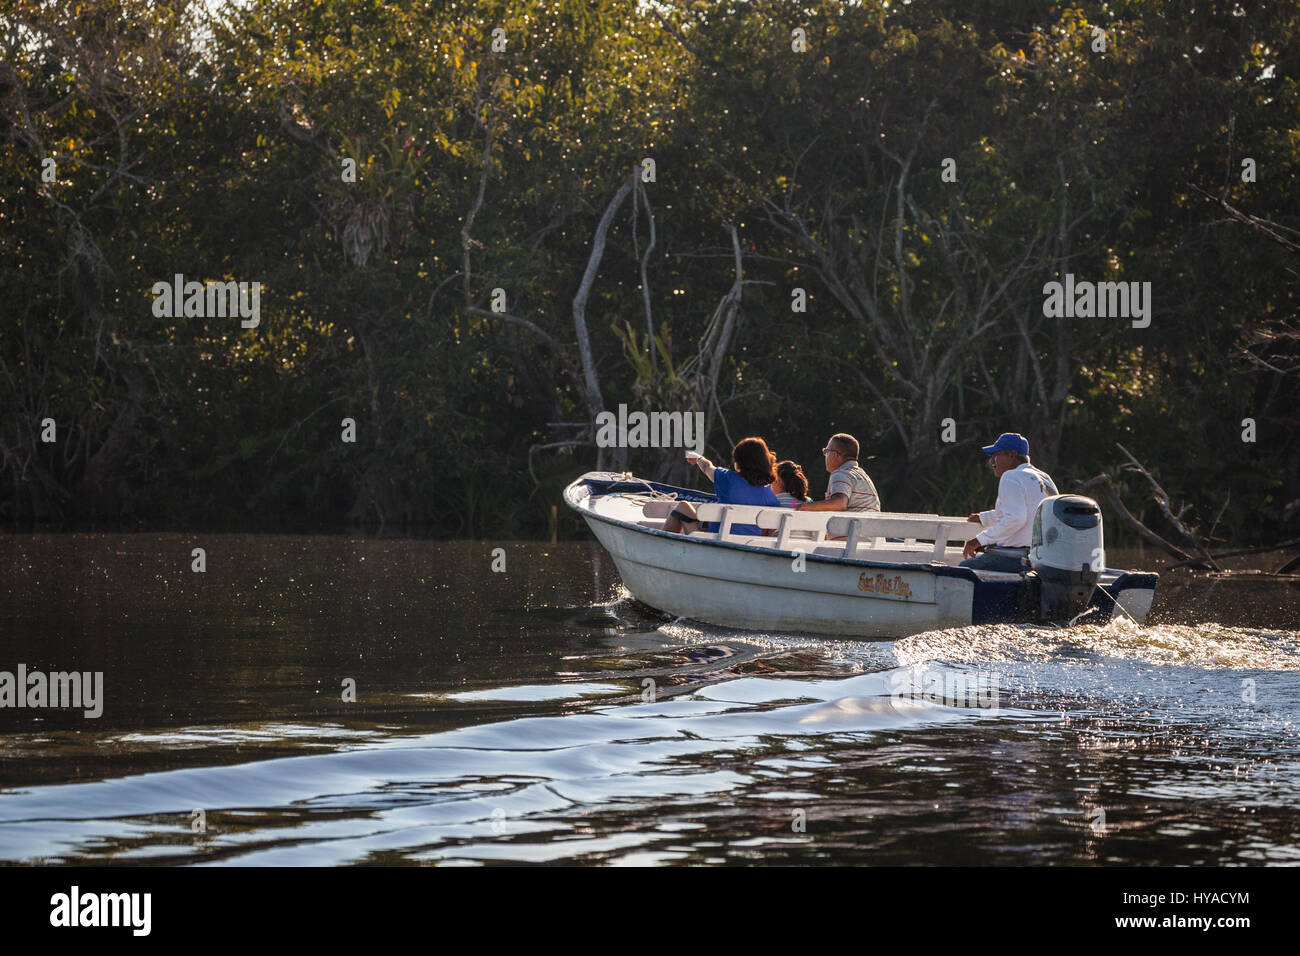 A tour boat sights some wildlife in the Tovara Natural Reserve in San Blas, Mexico. - Stock Image